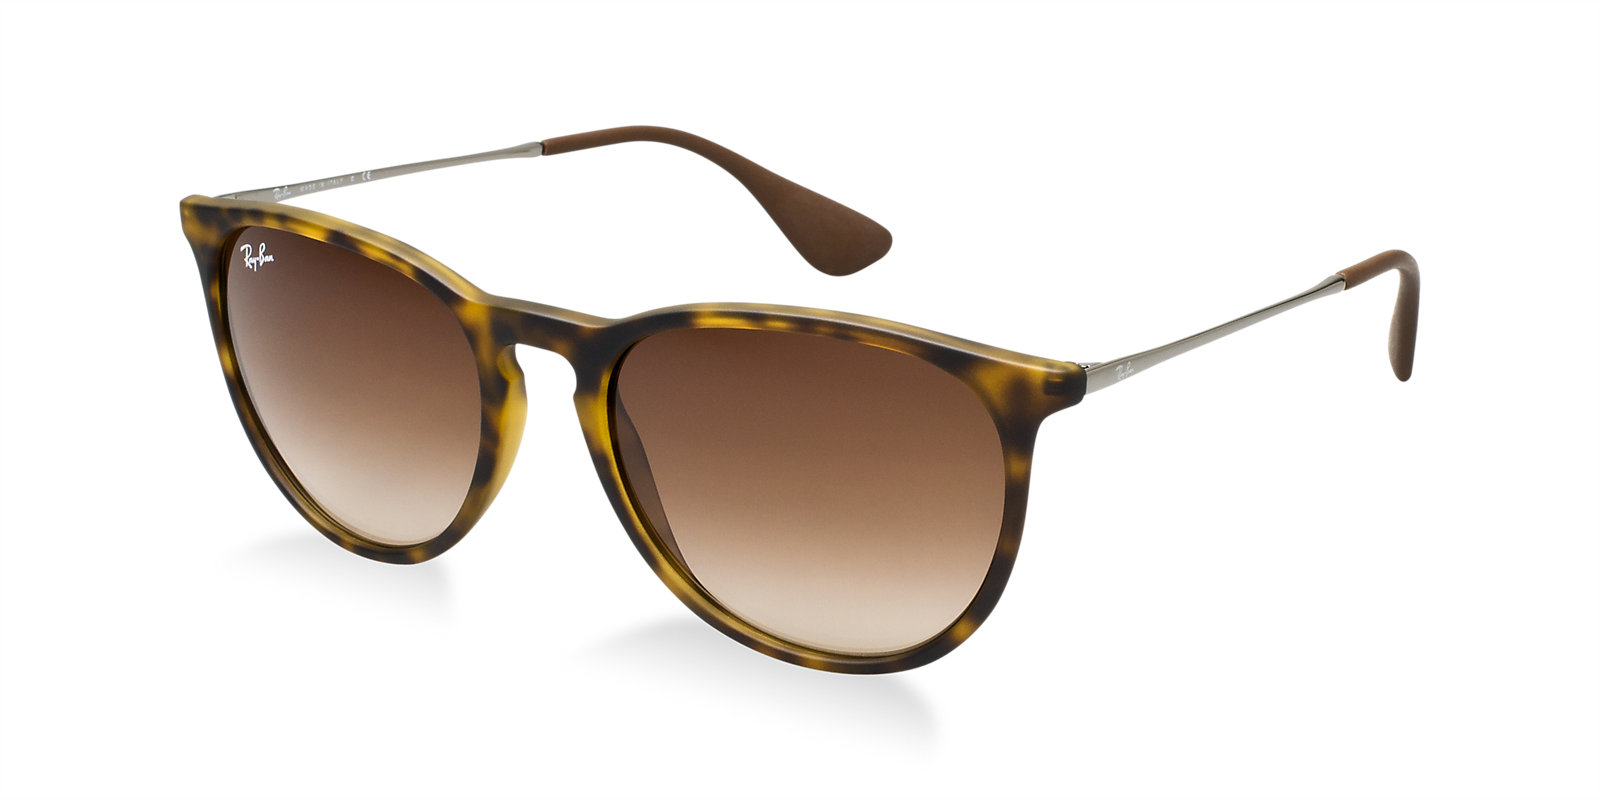 Previous  Next. Previous  Next. RAY-BAN RB4171 865 13 TORTOISE ERIKA  SUNGLASSES a13397dfc6